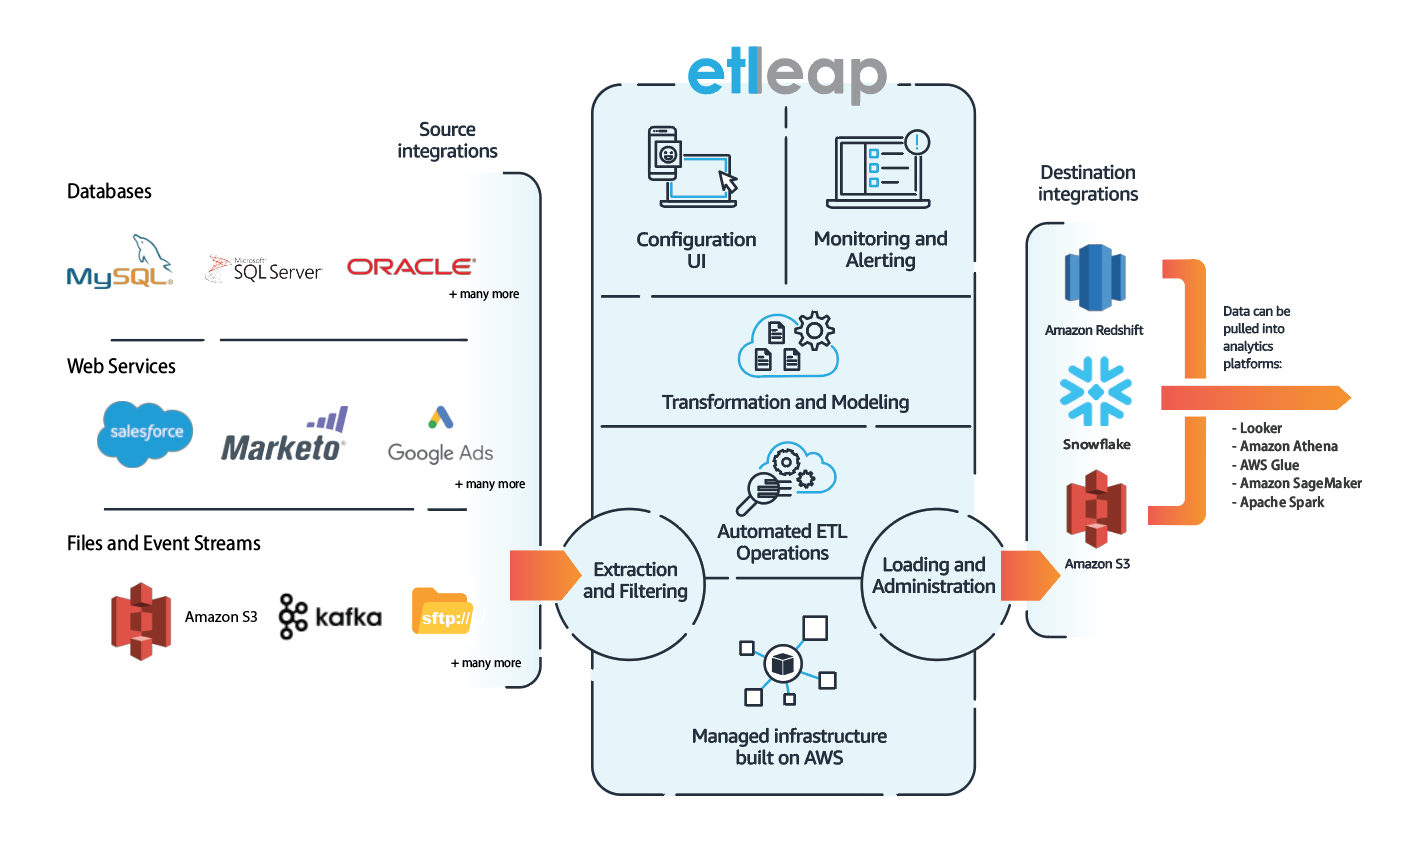 2019.05.07 - Etleap Product Graphic